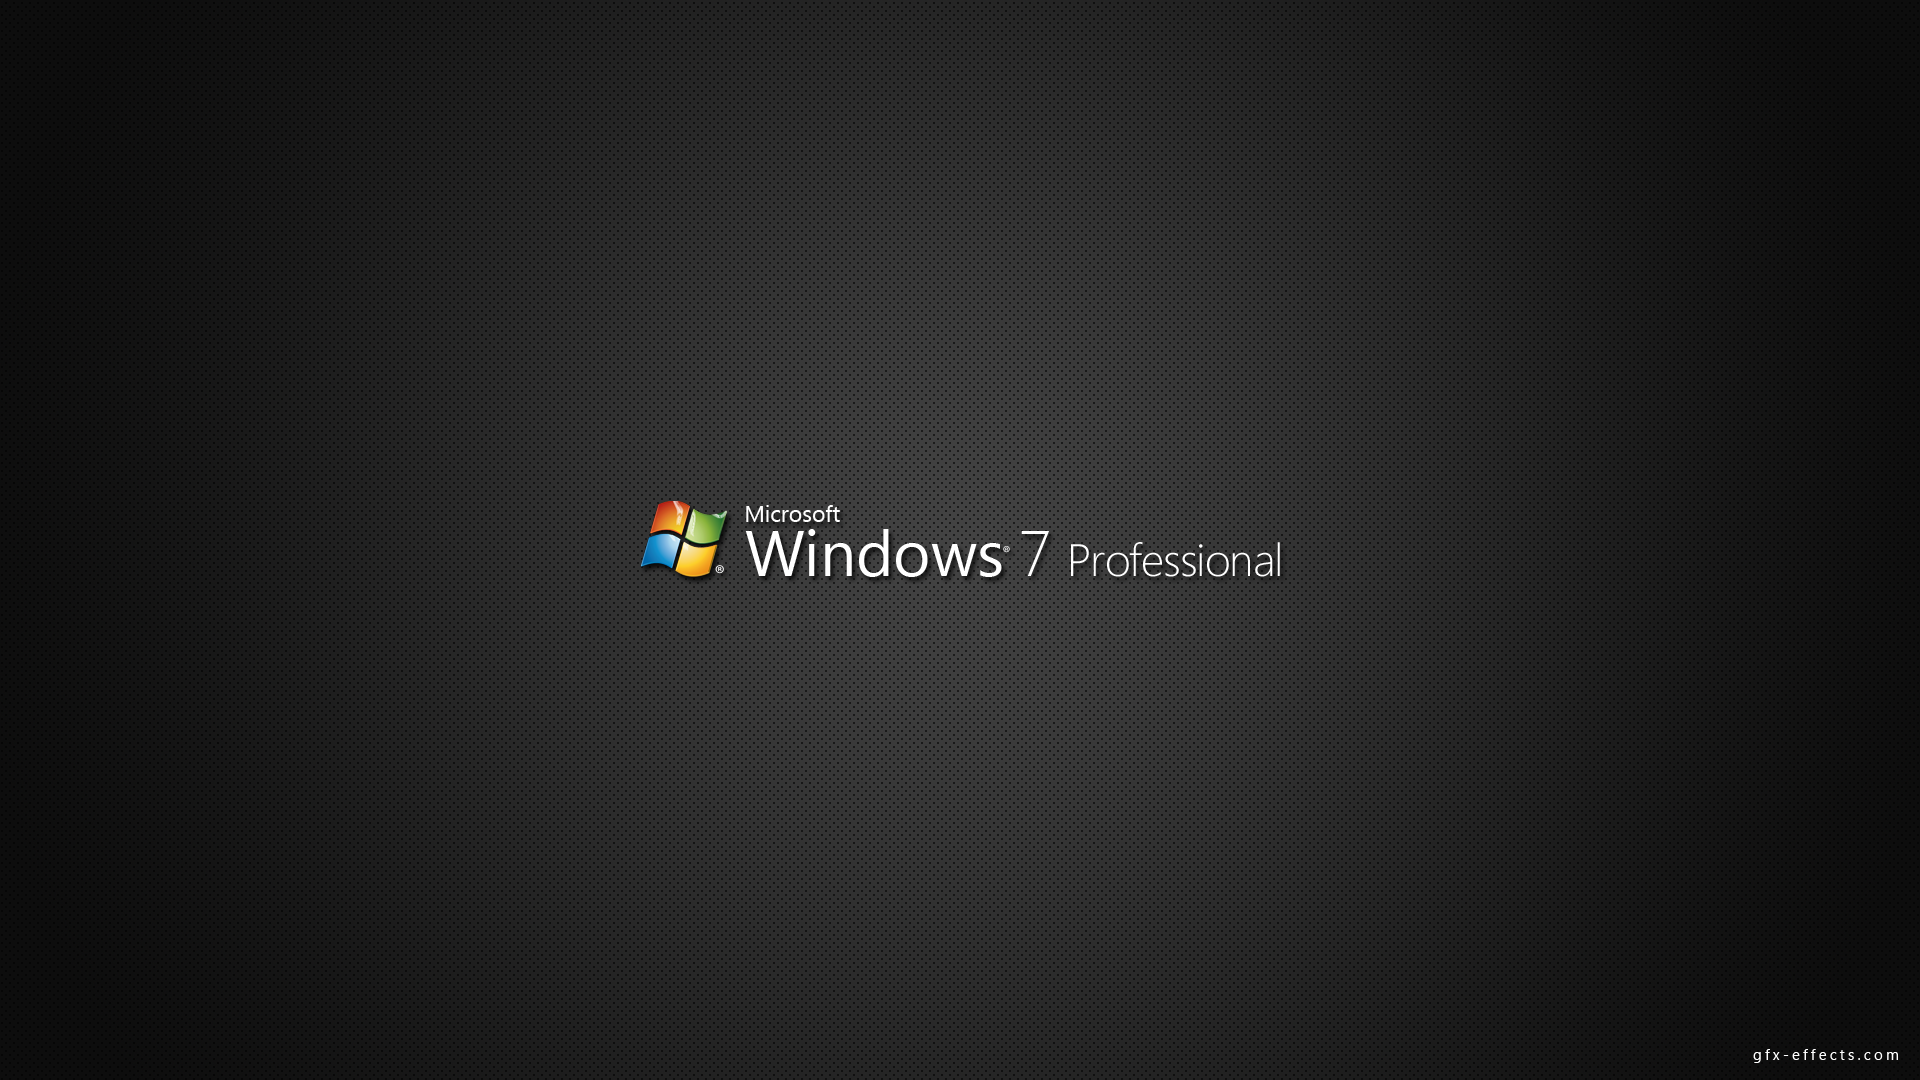 Windows 7 Wallpaper Pro submited images 1920x1080